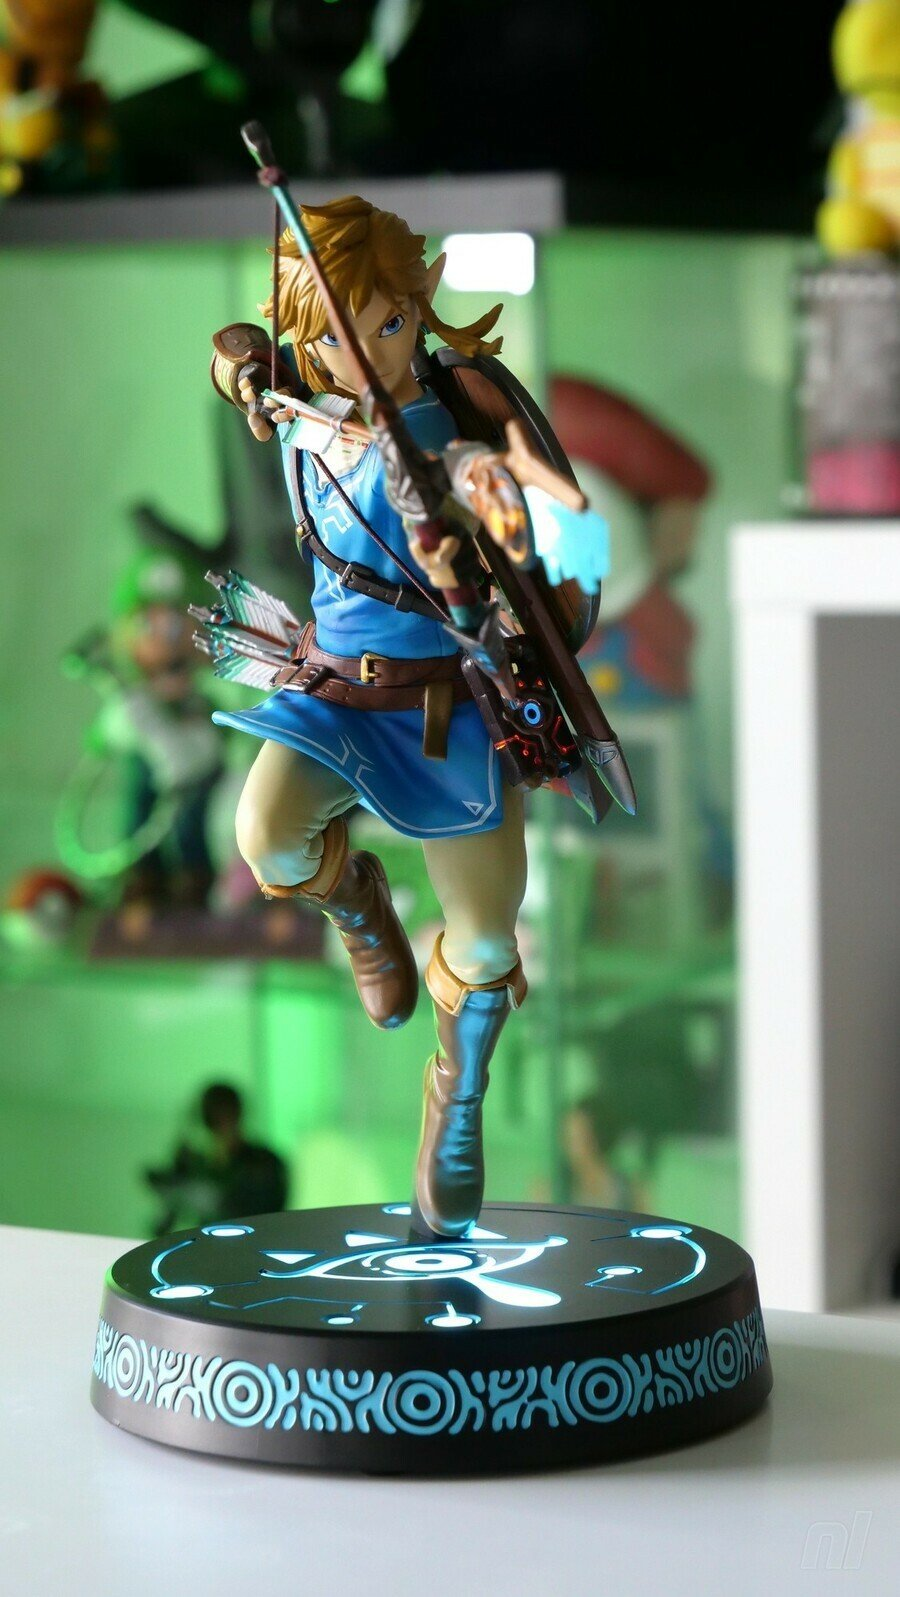 The first 4 characters of Zelda: Breath of the Wild link